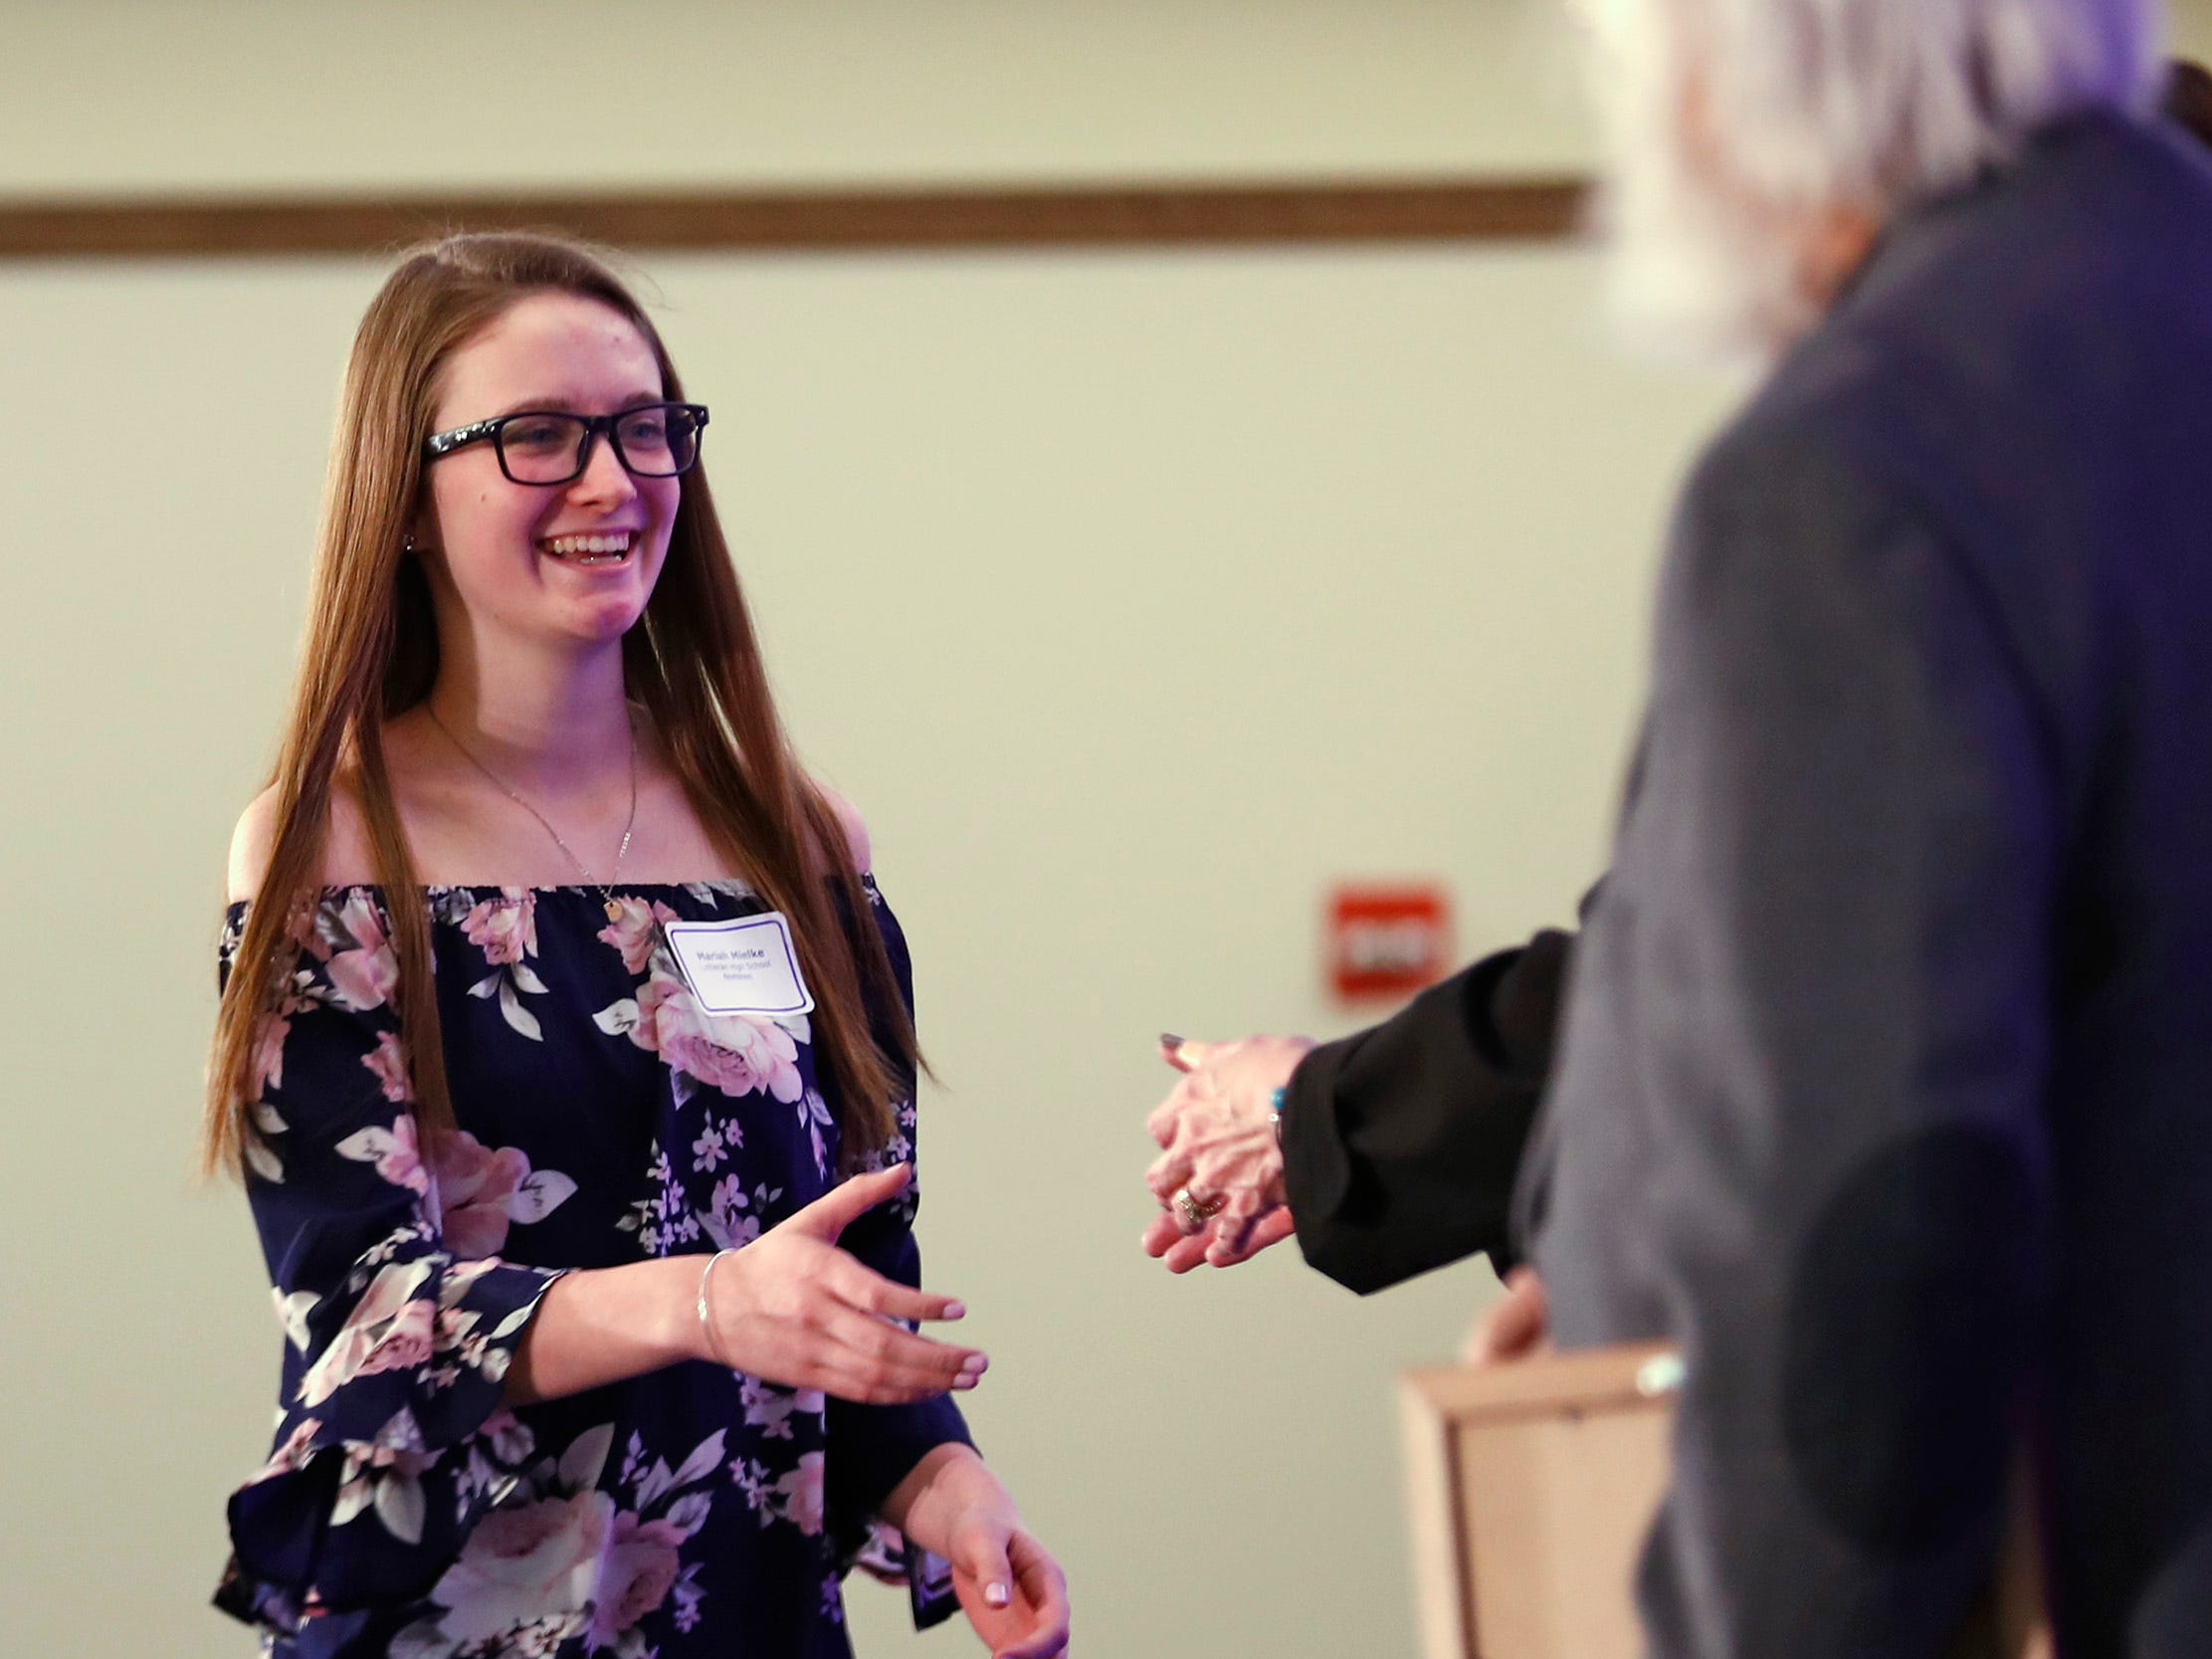 Lutheran High School student Mariah Mielke is honored with a Circle of Valor award at the 44th Annual Abe Lincoln Awards Program, Friday, Feb. 8, 2019. The Kiwanis Club of Indianapolis program was held at Ivy Tech Community College.  20 high school student were honored at the annual event which celebrates overcoming adversity in life to succeed.